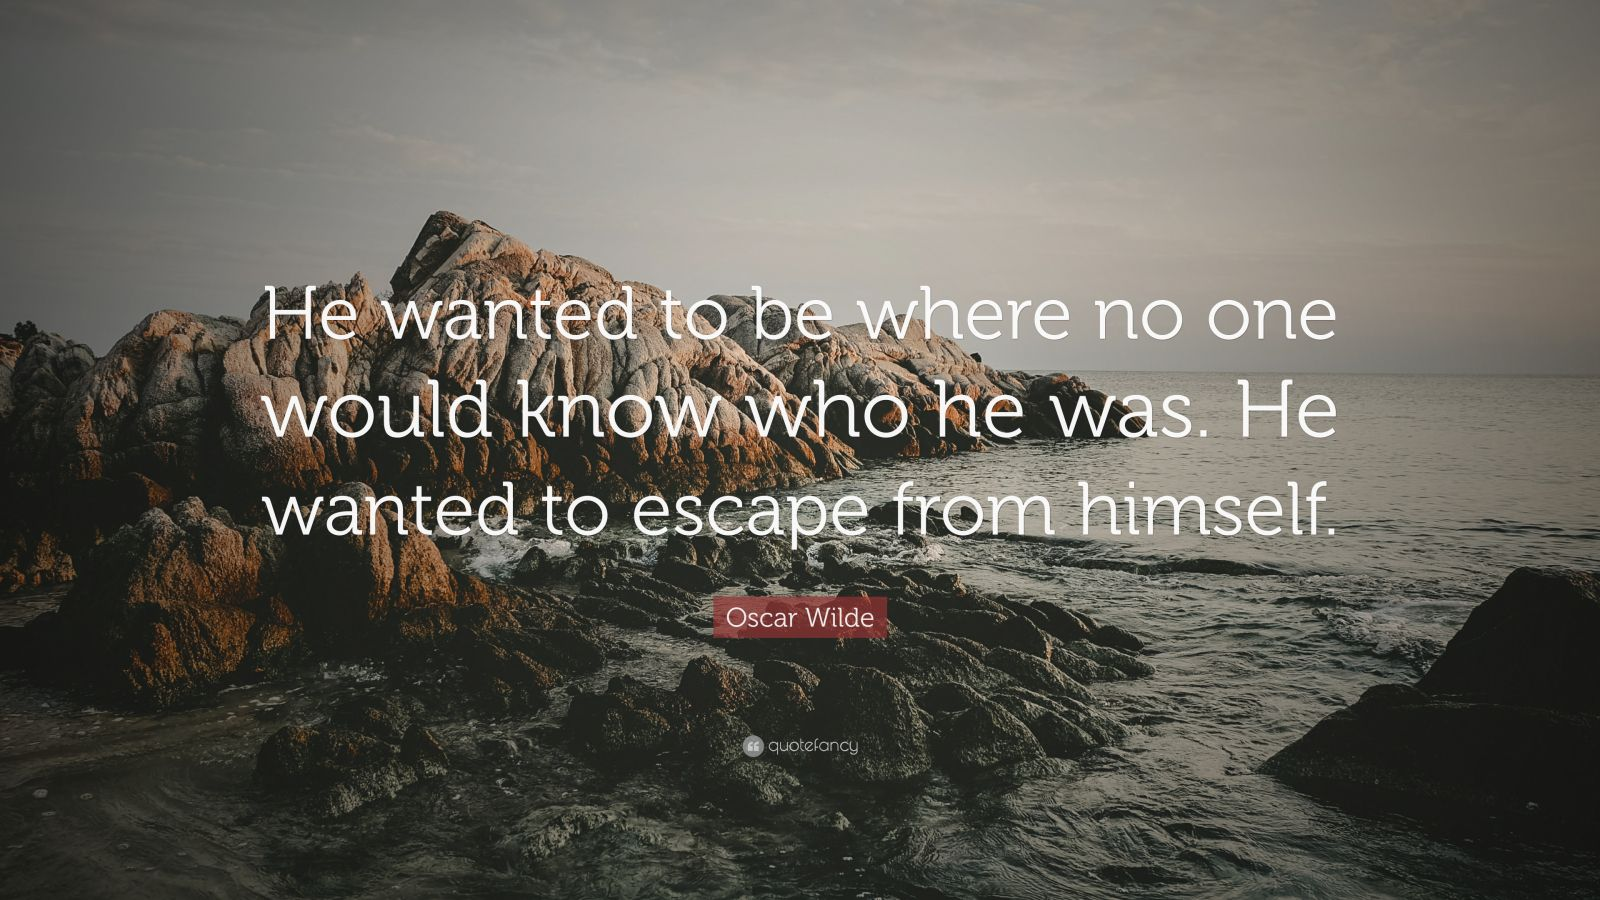 """Oscar Wilde Quote: """"He wanted to be where no one would know who he was. He wanted to escape from himself."""""""